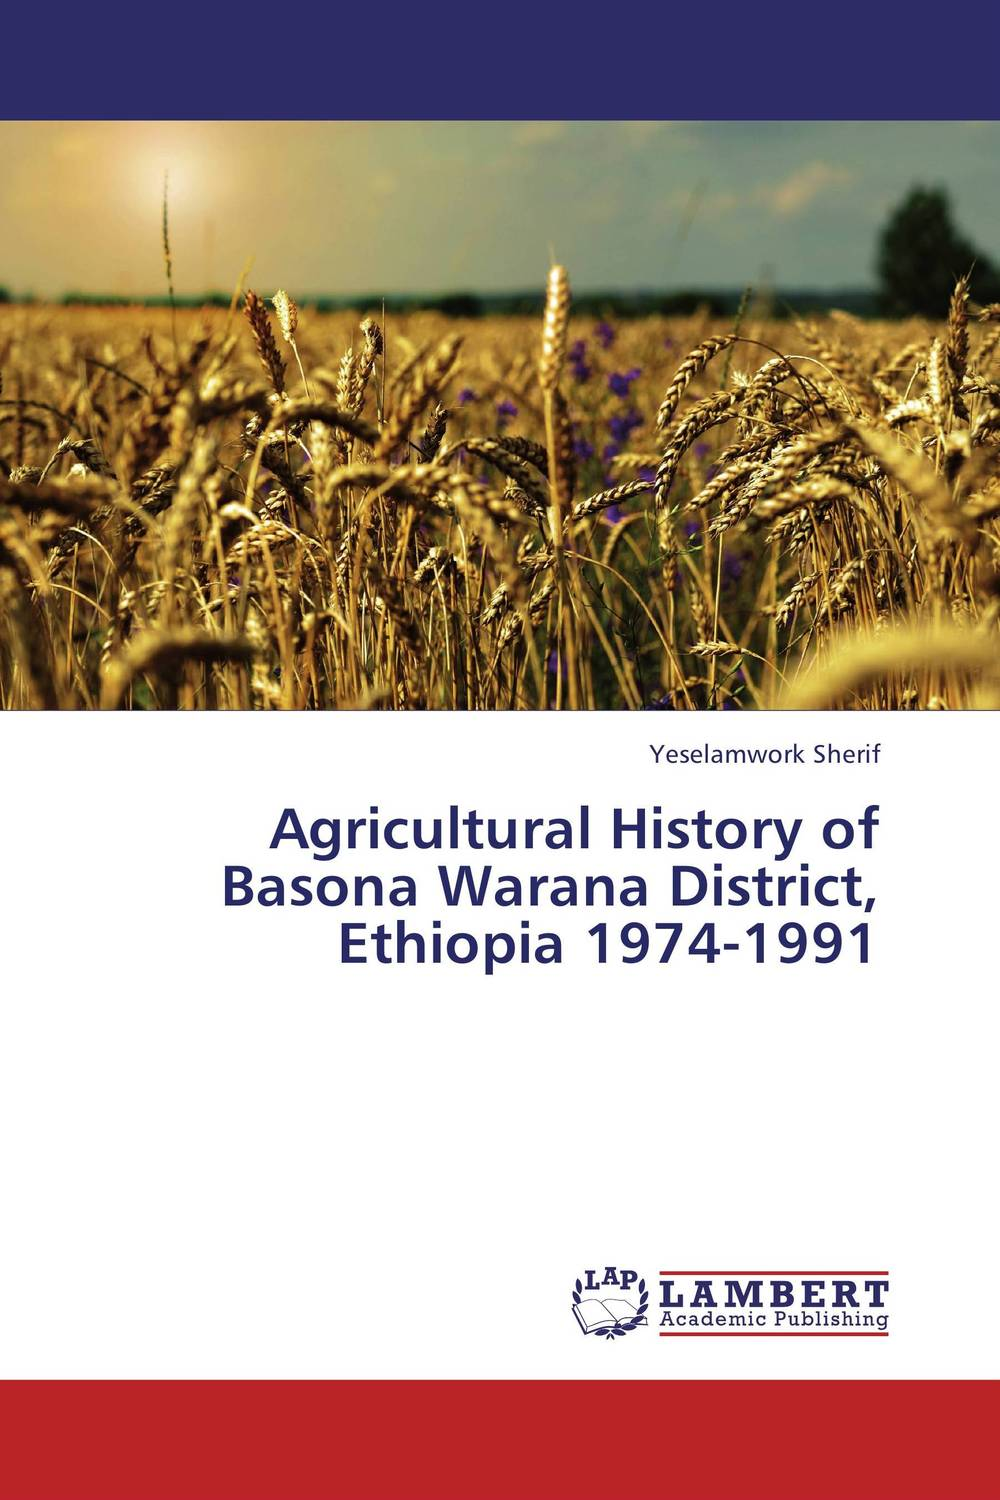 Agricultural History of Basona Warana District, Ethiopia 1974-1991 cervical cancer in amhara region in ethiopia